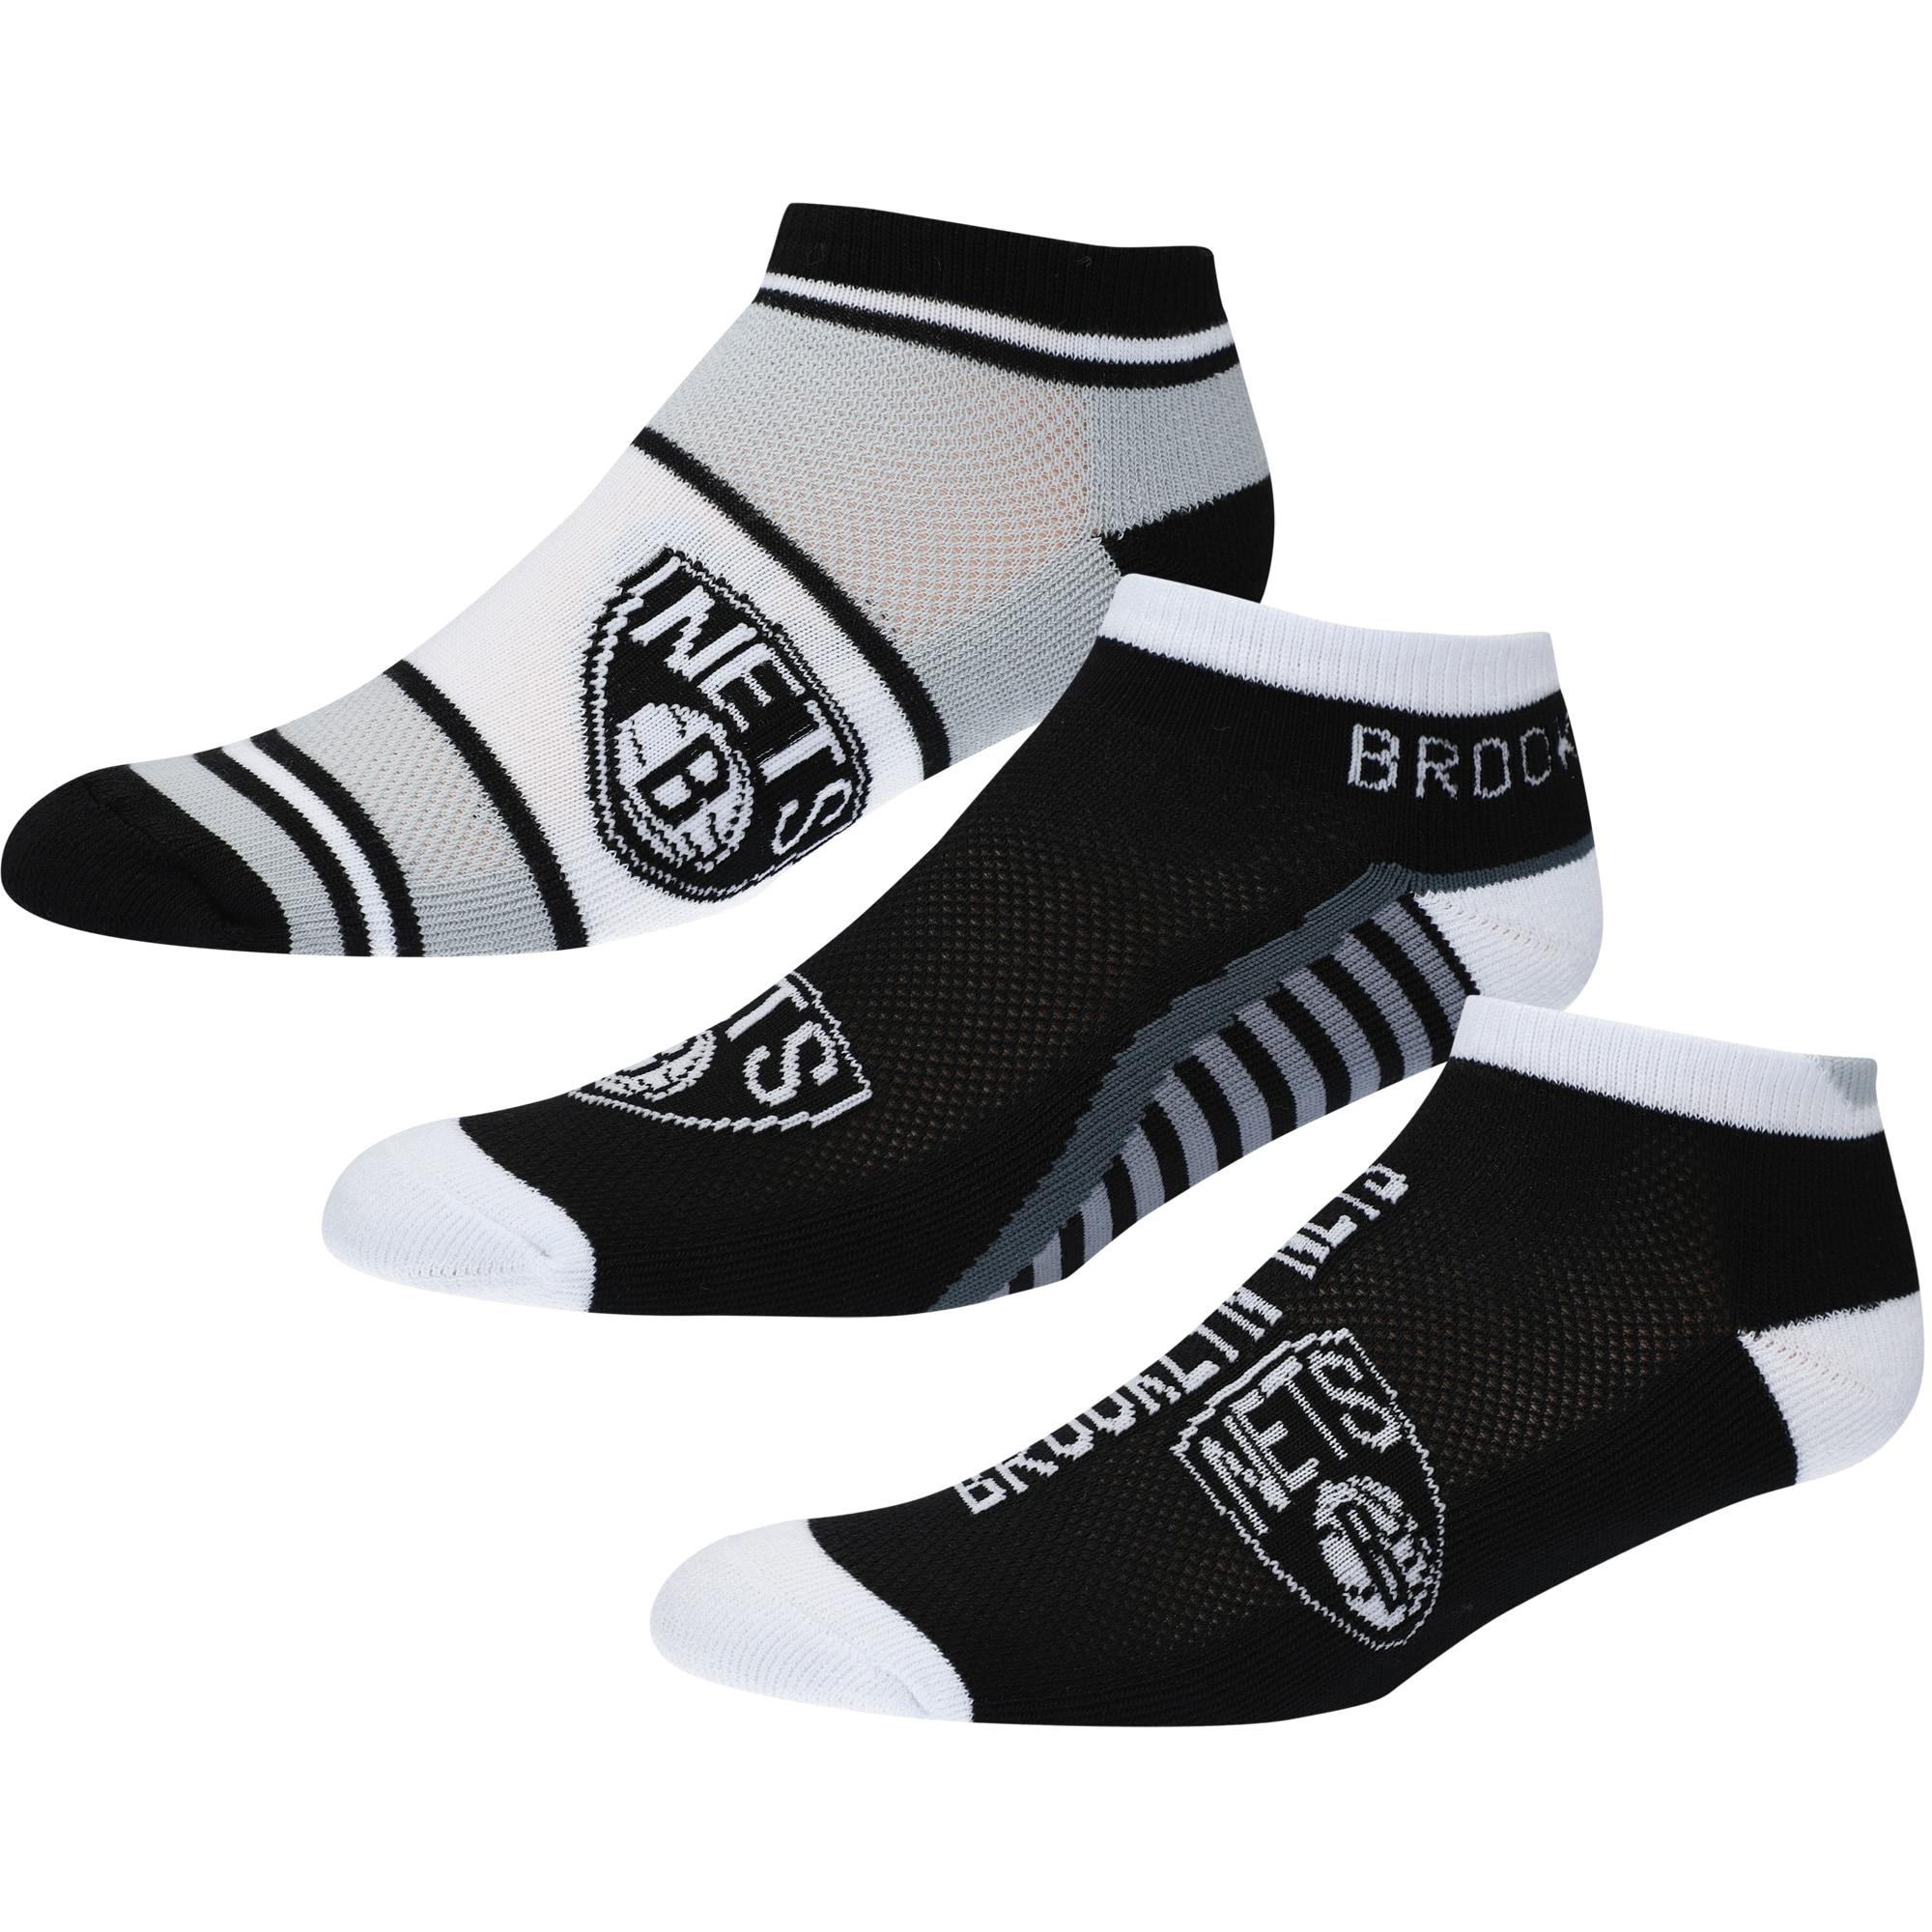 Brooklyn Nets For Bare Feet Three-Pack Show Me The Money Ankle Socks